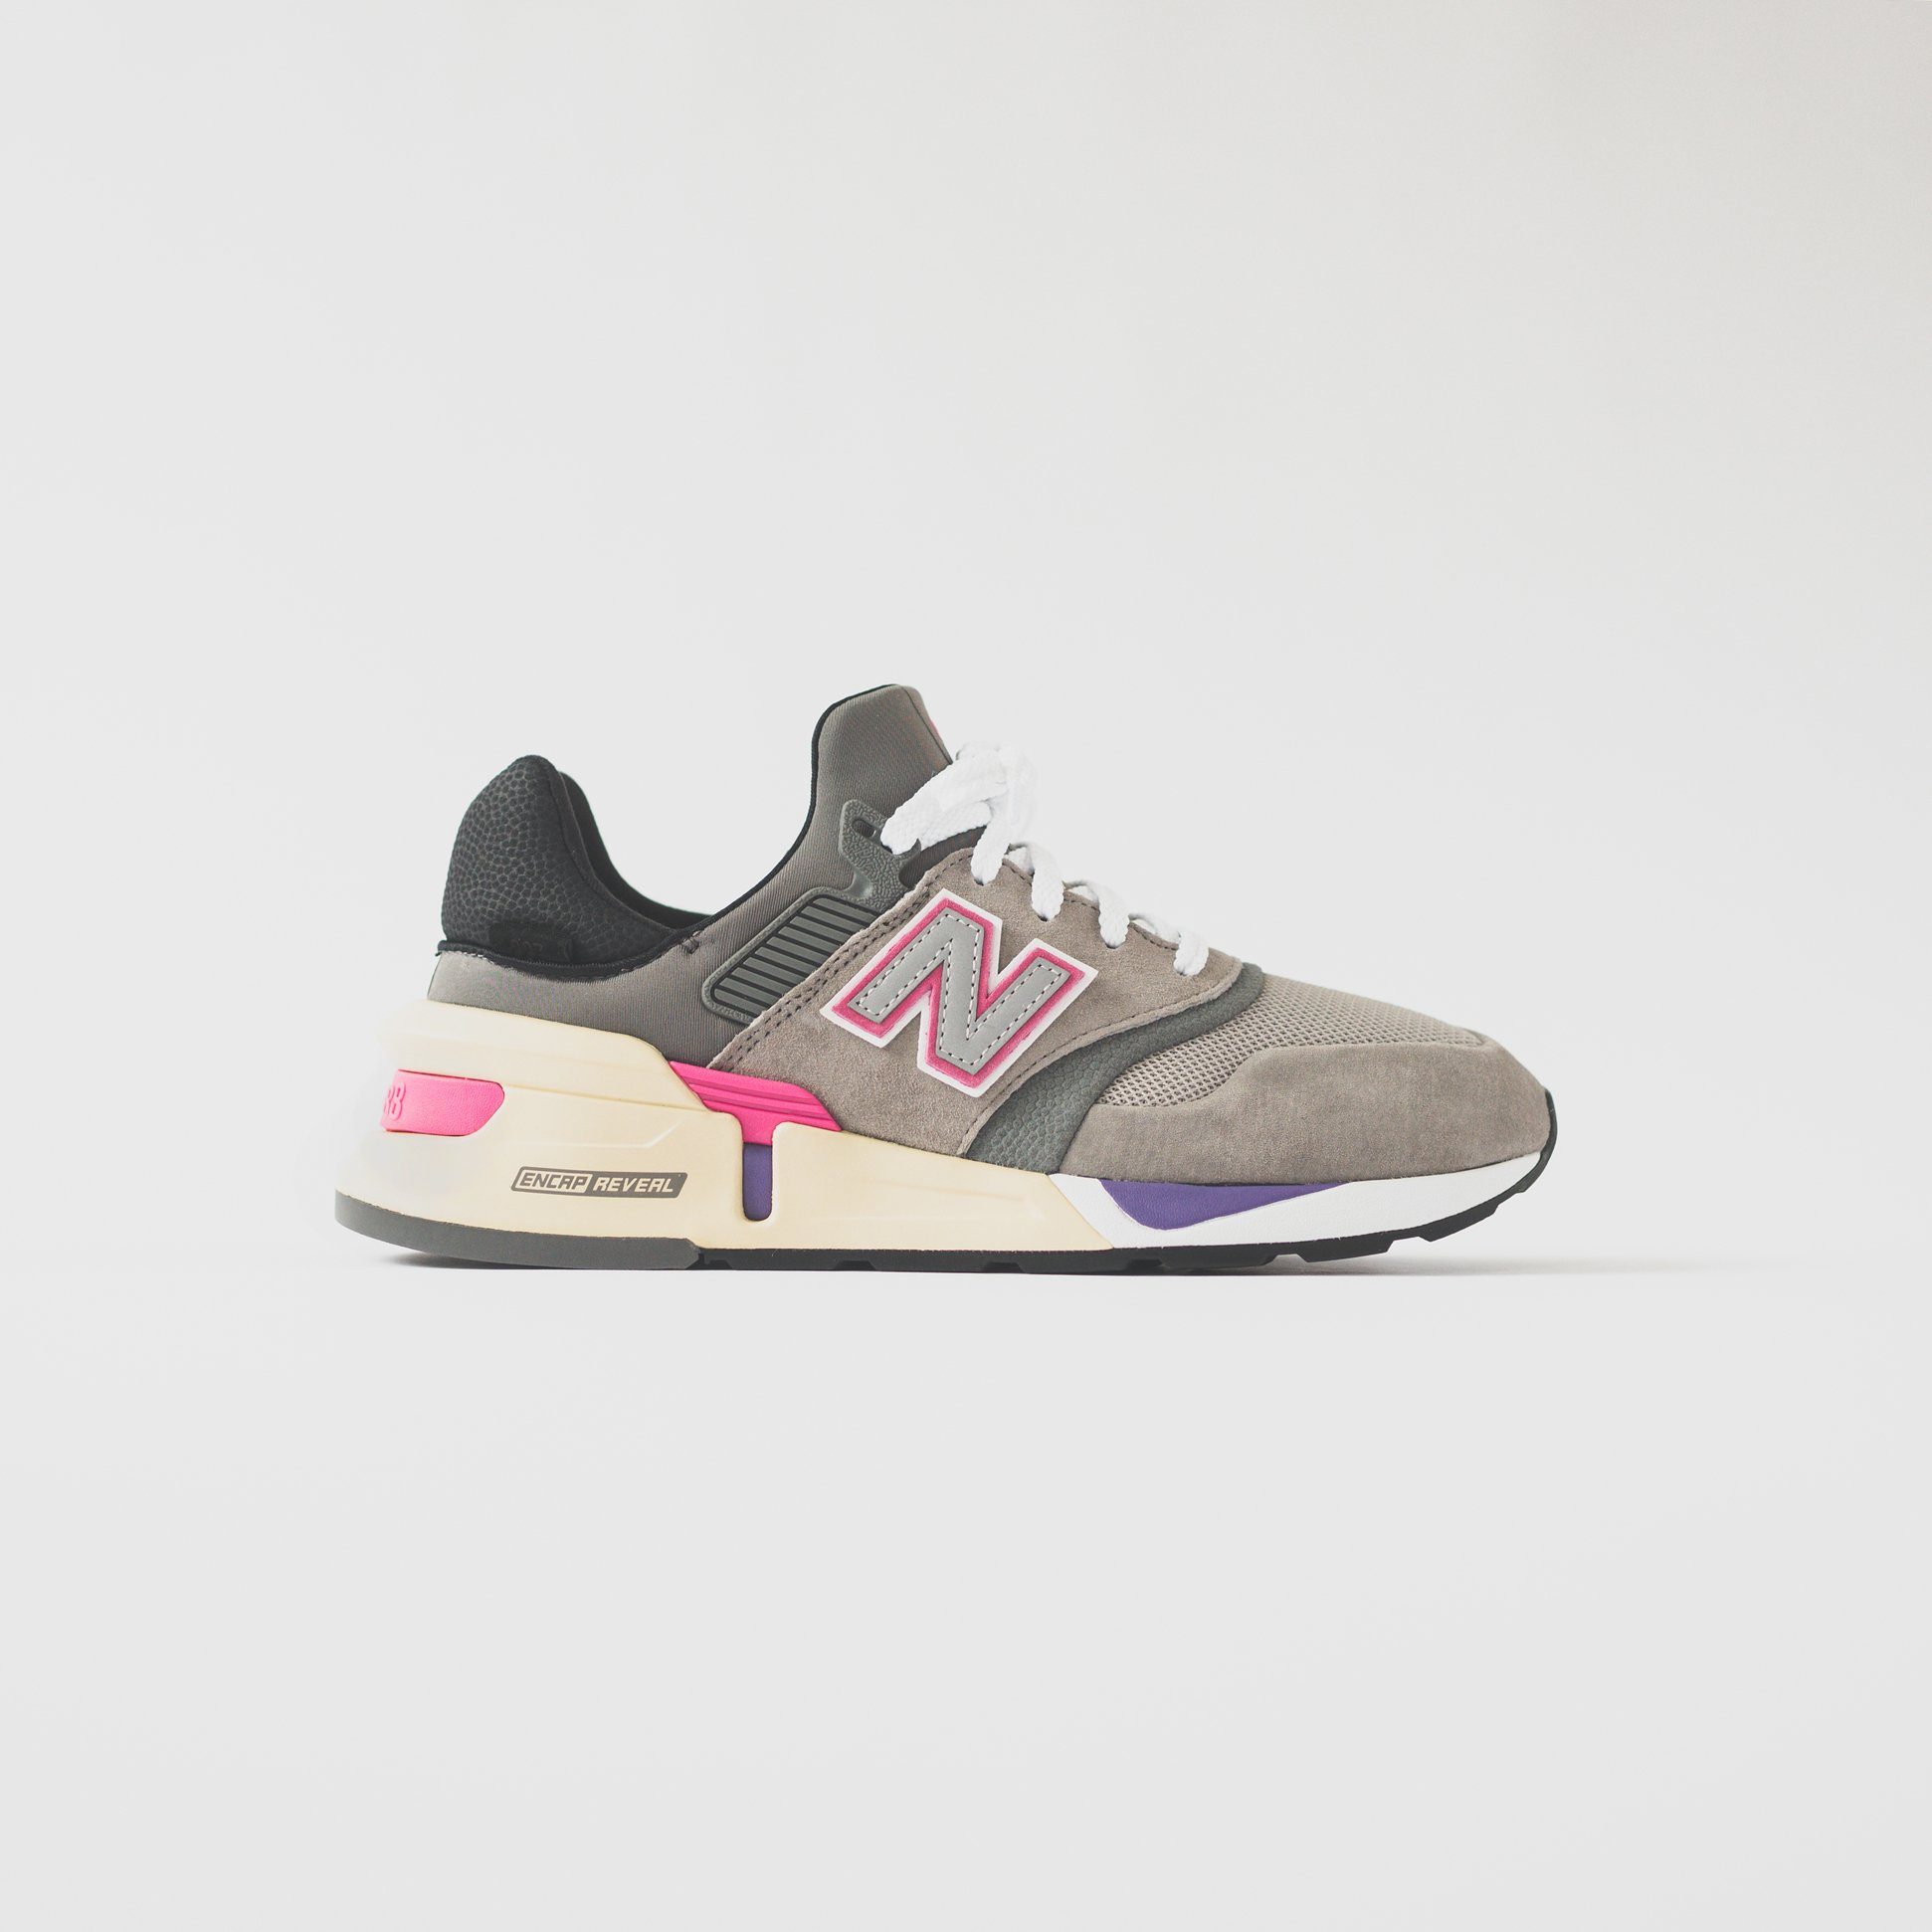 quality design 2d8ad b8b70 Ronnie Fieg is Dropping Six New Balance Colorways For Latest ...